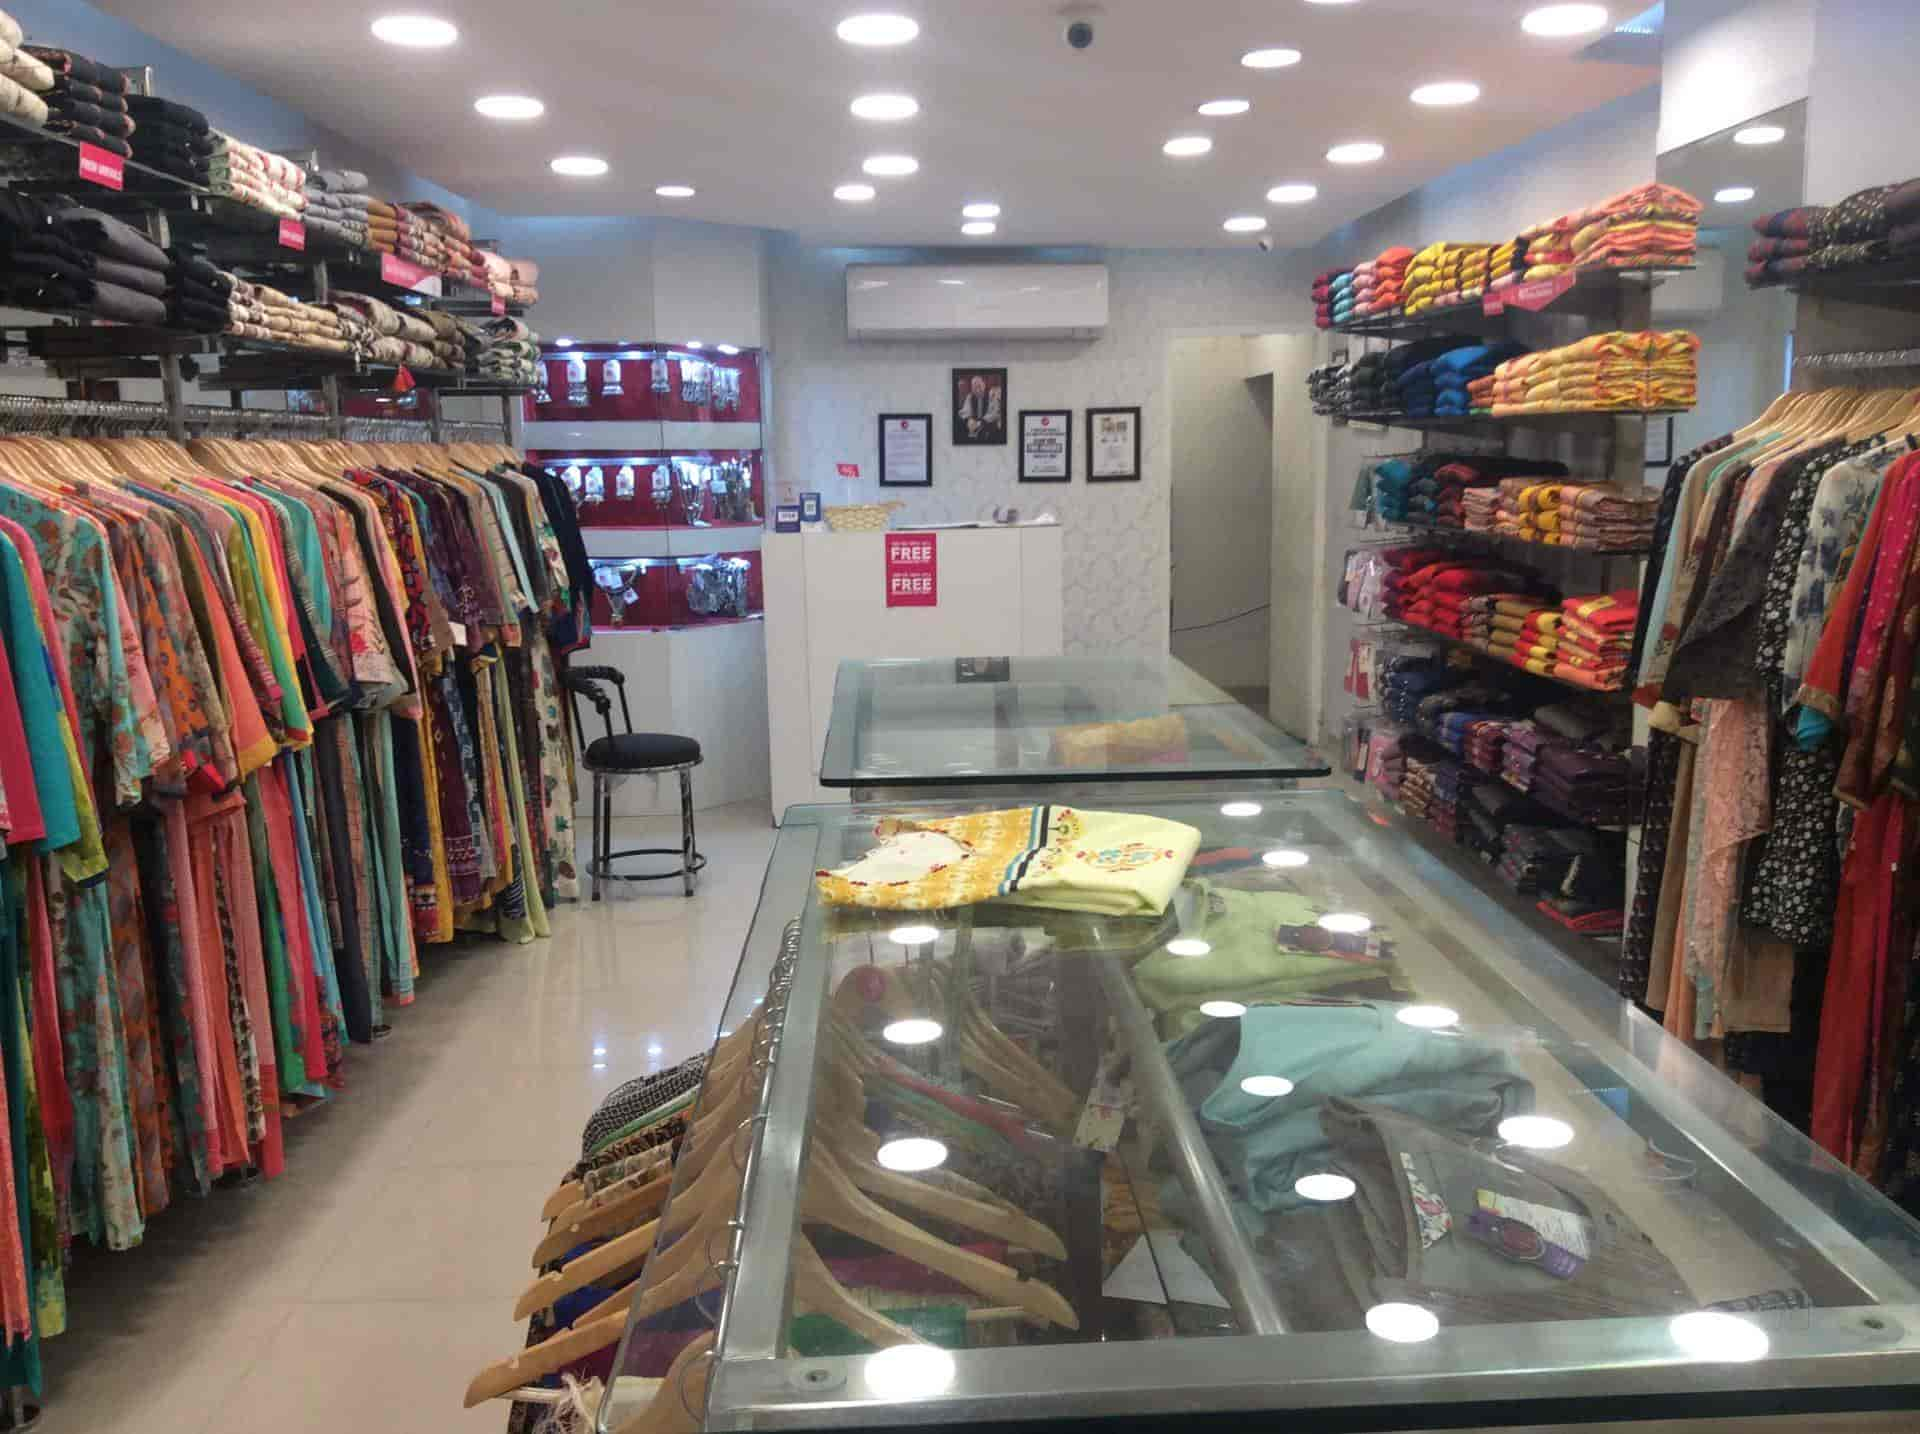 702eb03958 Shree The Indian Avatar, Kohat Enclave-Pitampura - Women Ethnic Wear  Retailers in Delhi - Justdial